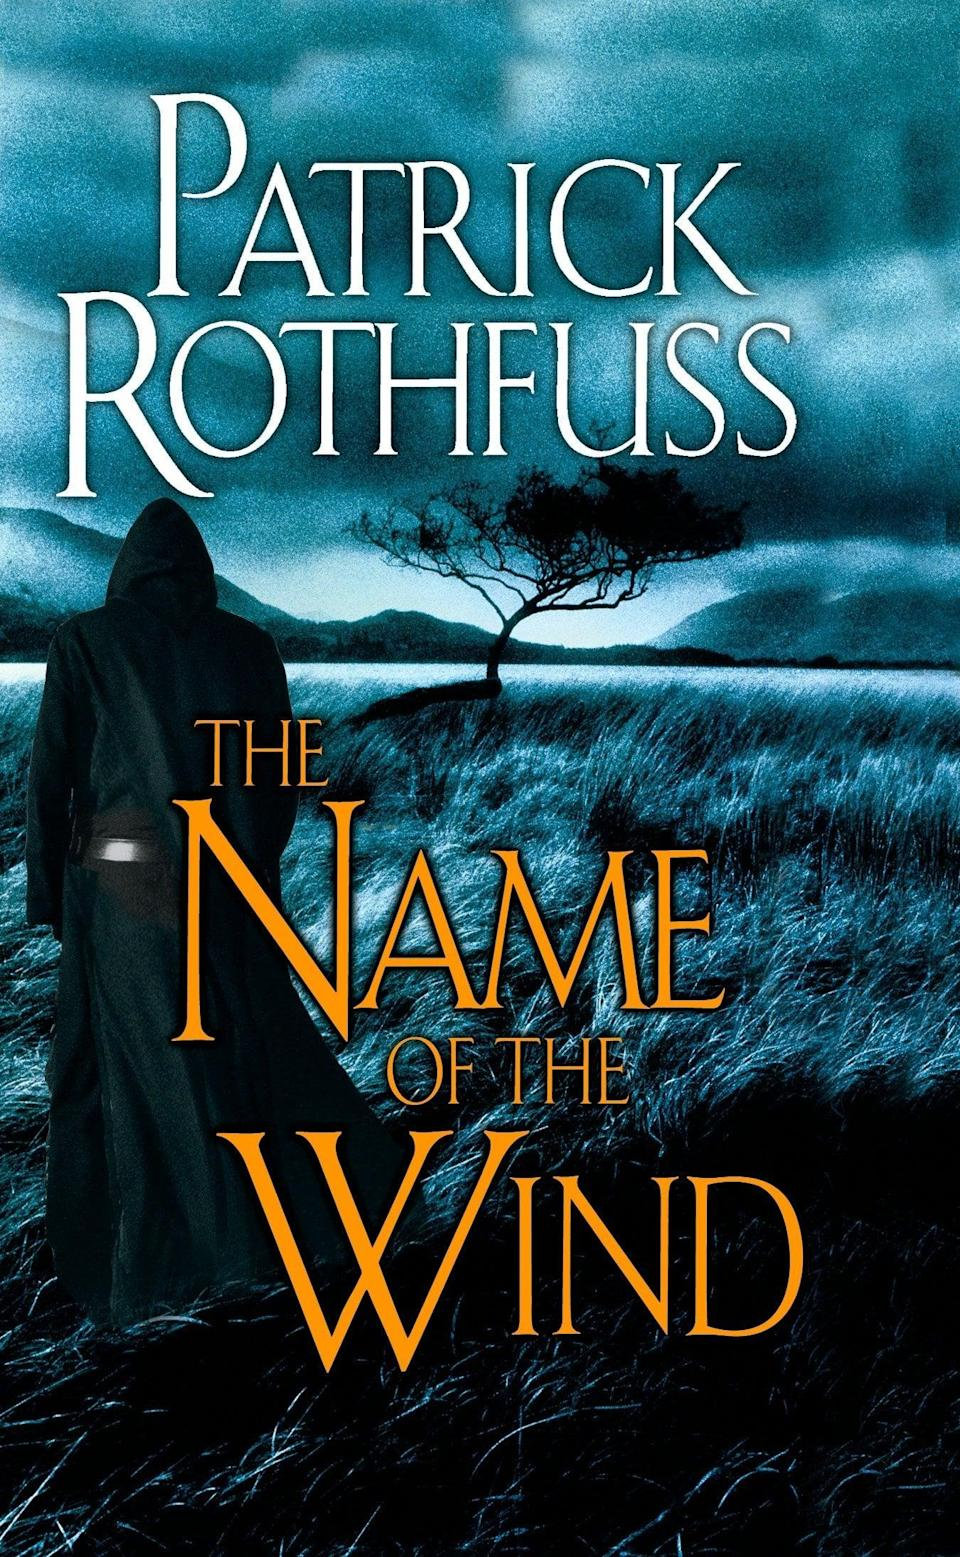 <p>Patrick Rothfuss's <span><strong>The Name of the Wind</strong></span> is a sprawling fantasy masterpiece that may not appear to be cozy on the surface, but there's a comforting heart beating inside of this epic. Kvothe, the book's main character, is a gifted storyteller whose adventurous life is full of spooky encounters, daring deeds, and romance that he recounts on a long night as he sits with a stranger in his inn.</p>